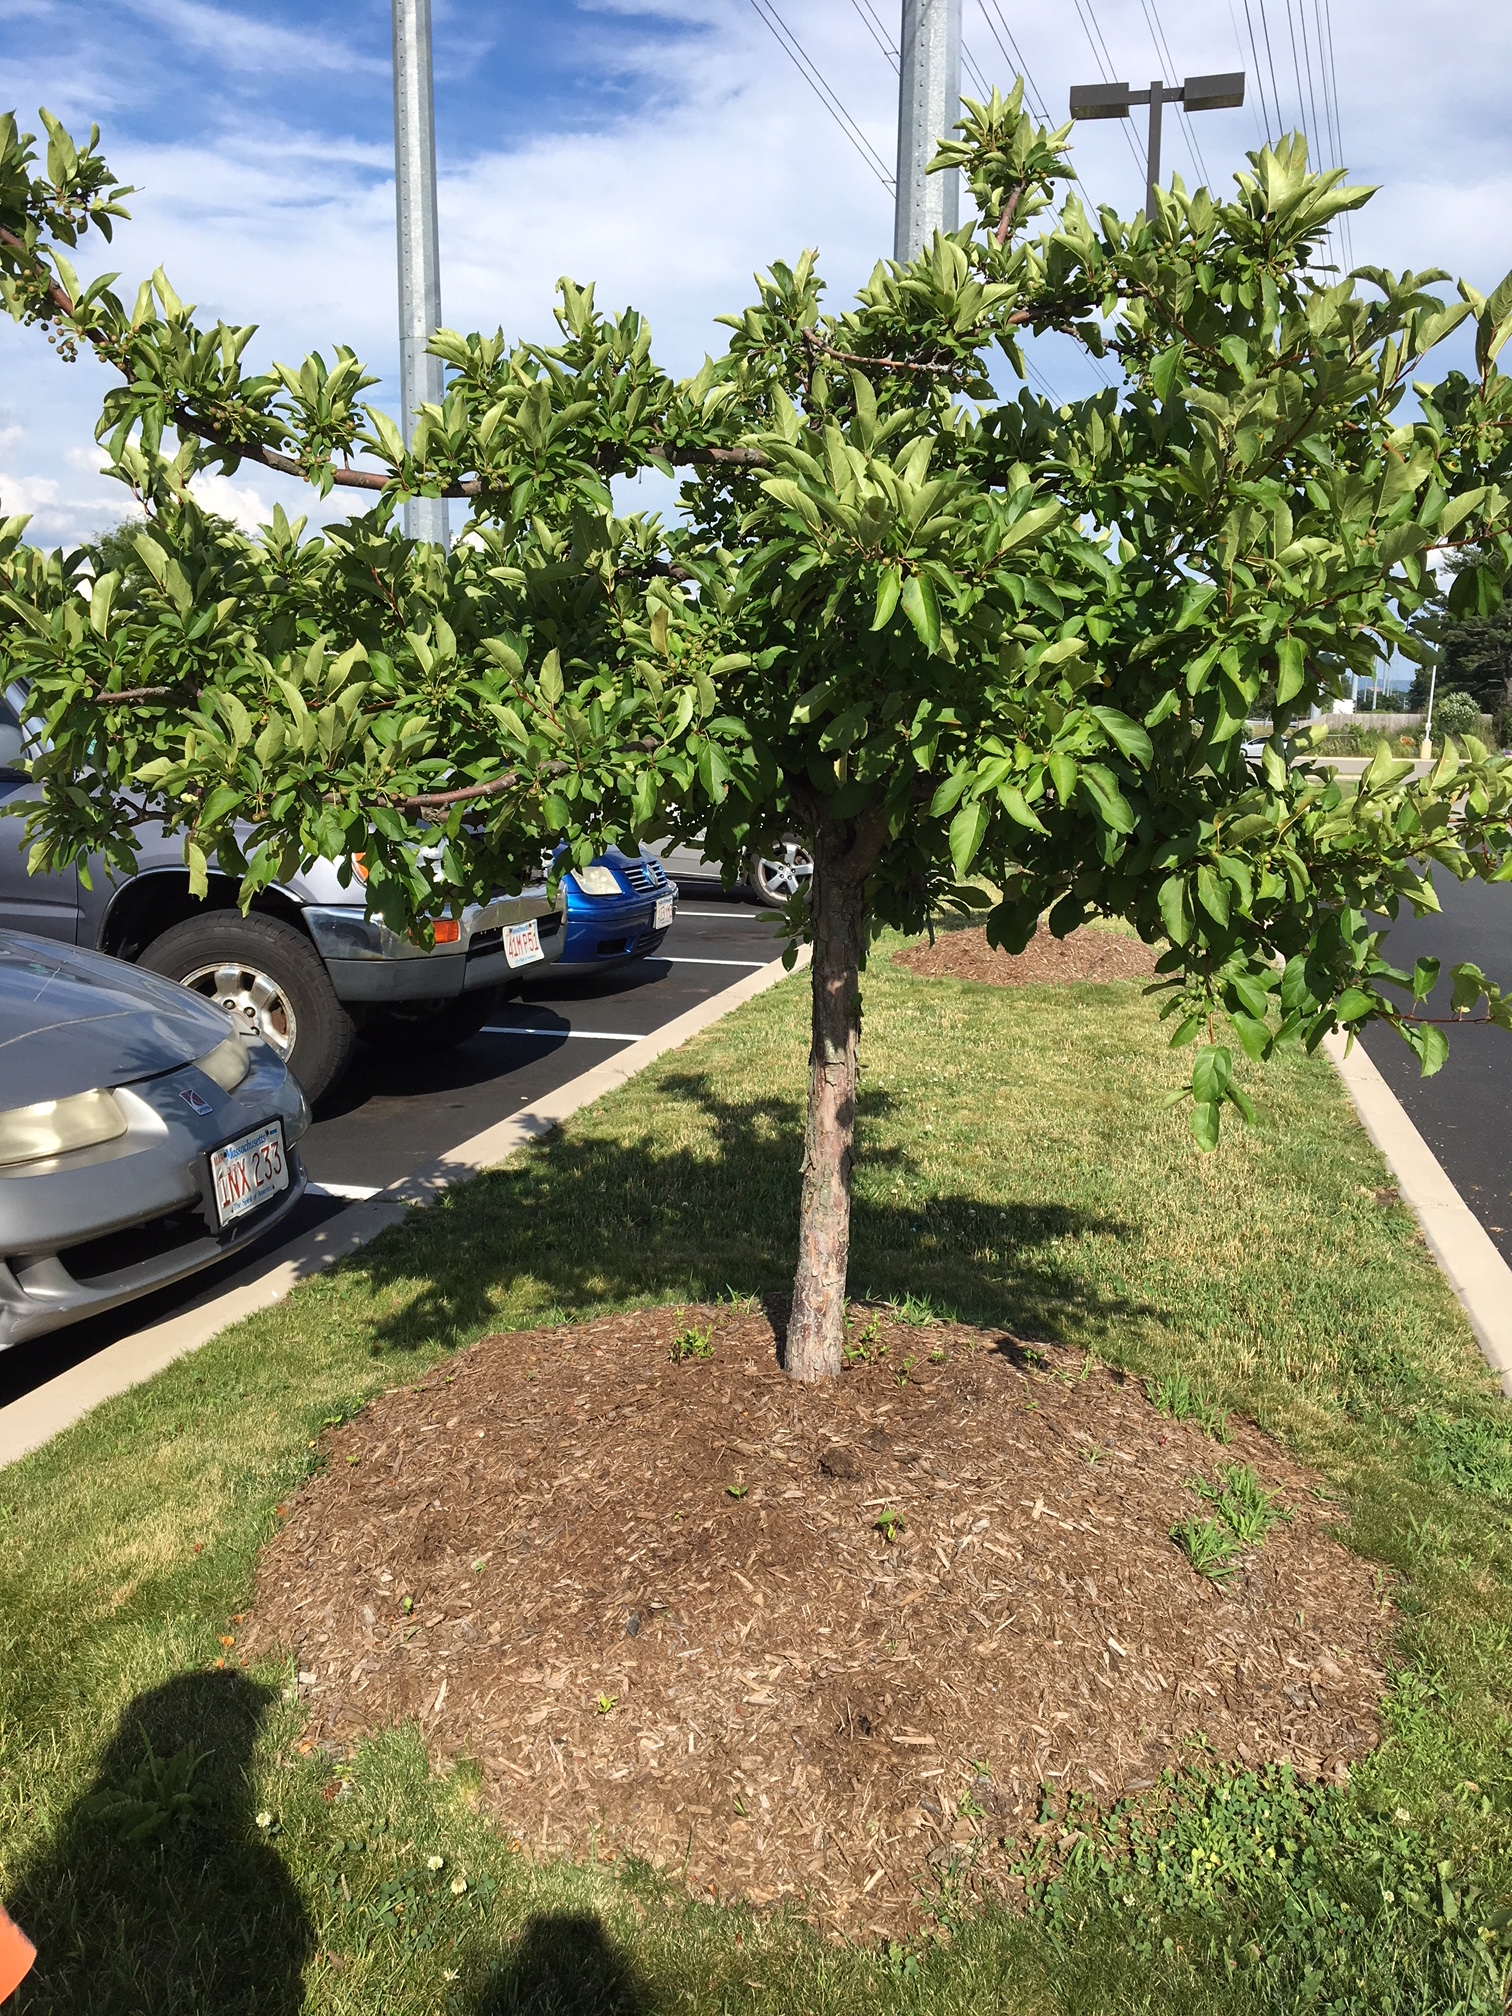 The Chicopee crabapple we previously dug out of the volcano mulch. Looks much better now (taken 2018),despite new volcano mulch added this spring.